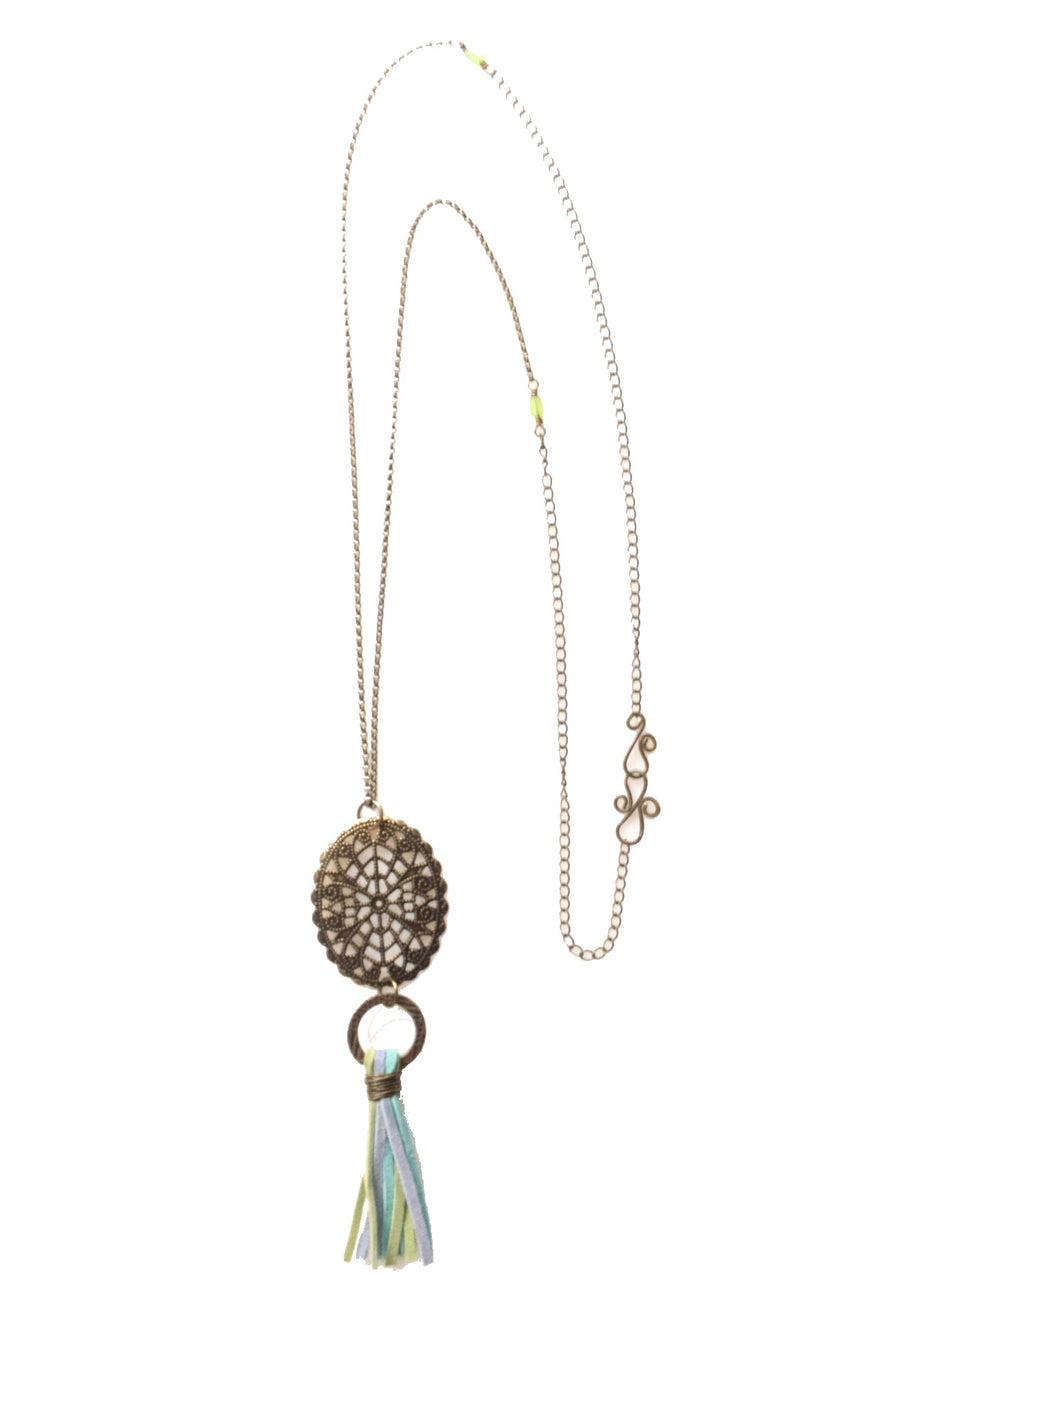 Oval Filigree Pendant with Suede Tassel Necklace N136